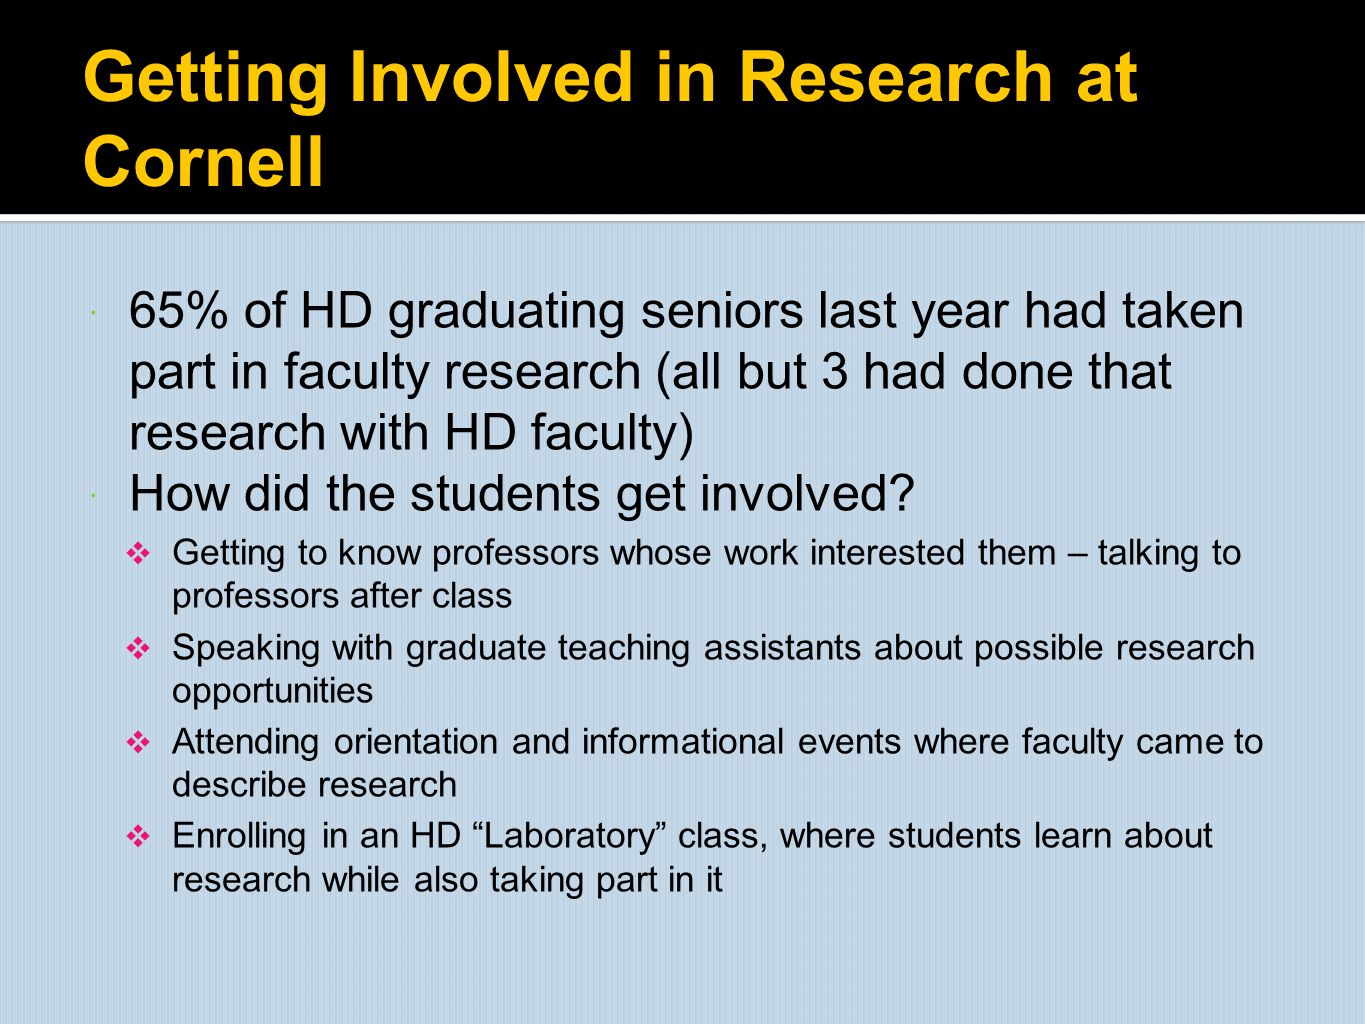 Getting Involved in Research at Cornell